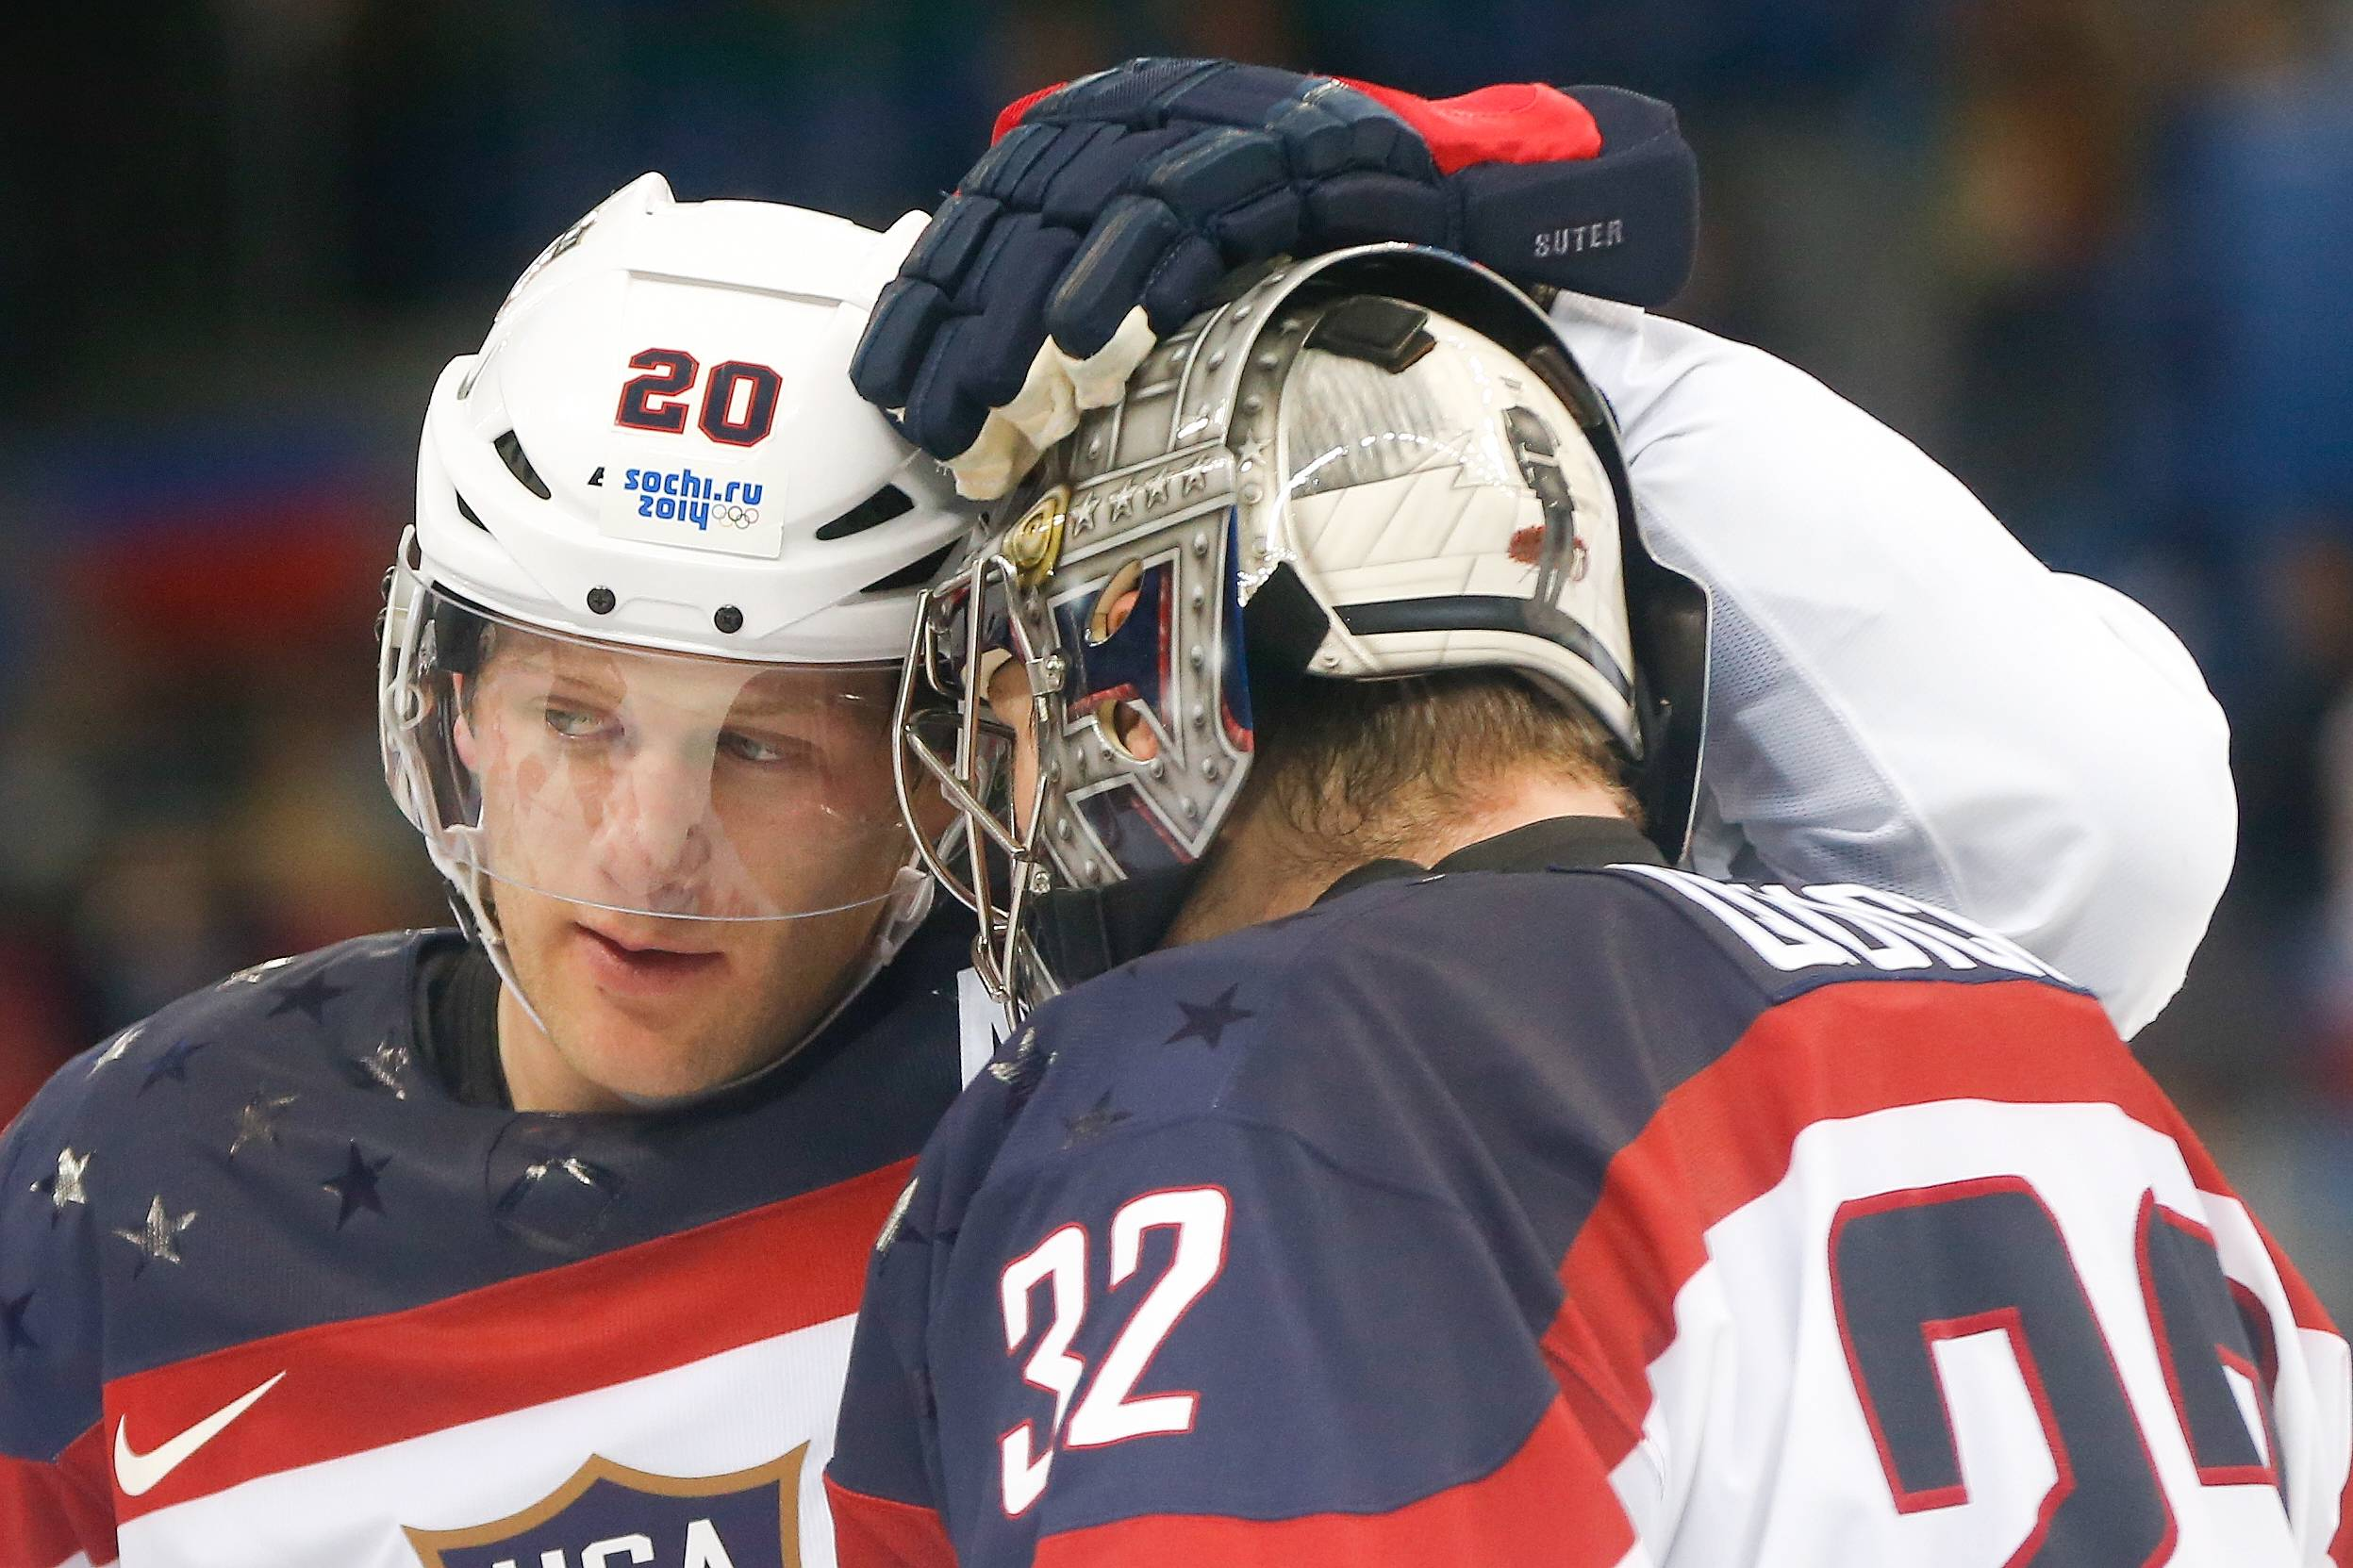 USA defenseman Ryan Suter celebrates Team USA's 5-2 win over the Czech Republic with goaltender Jonathan Quick after the men's quarterfinal hockey game.